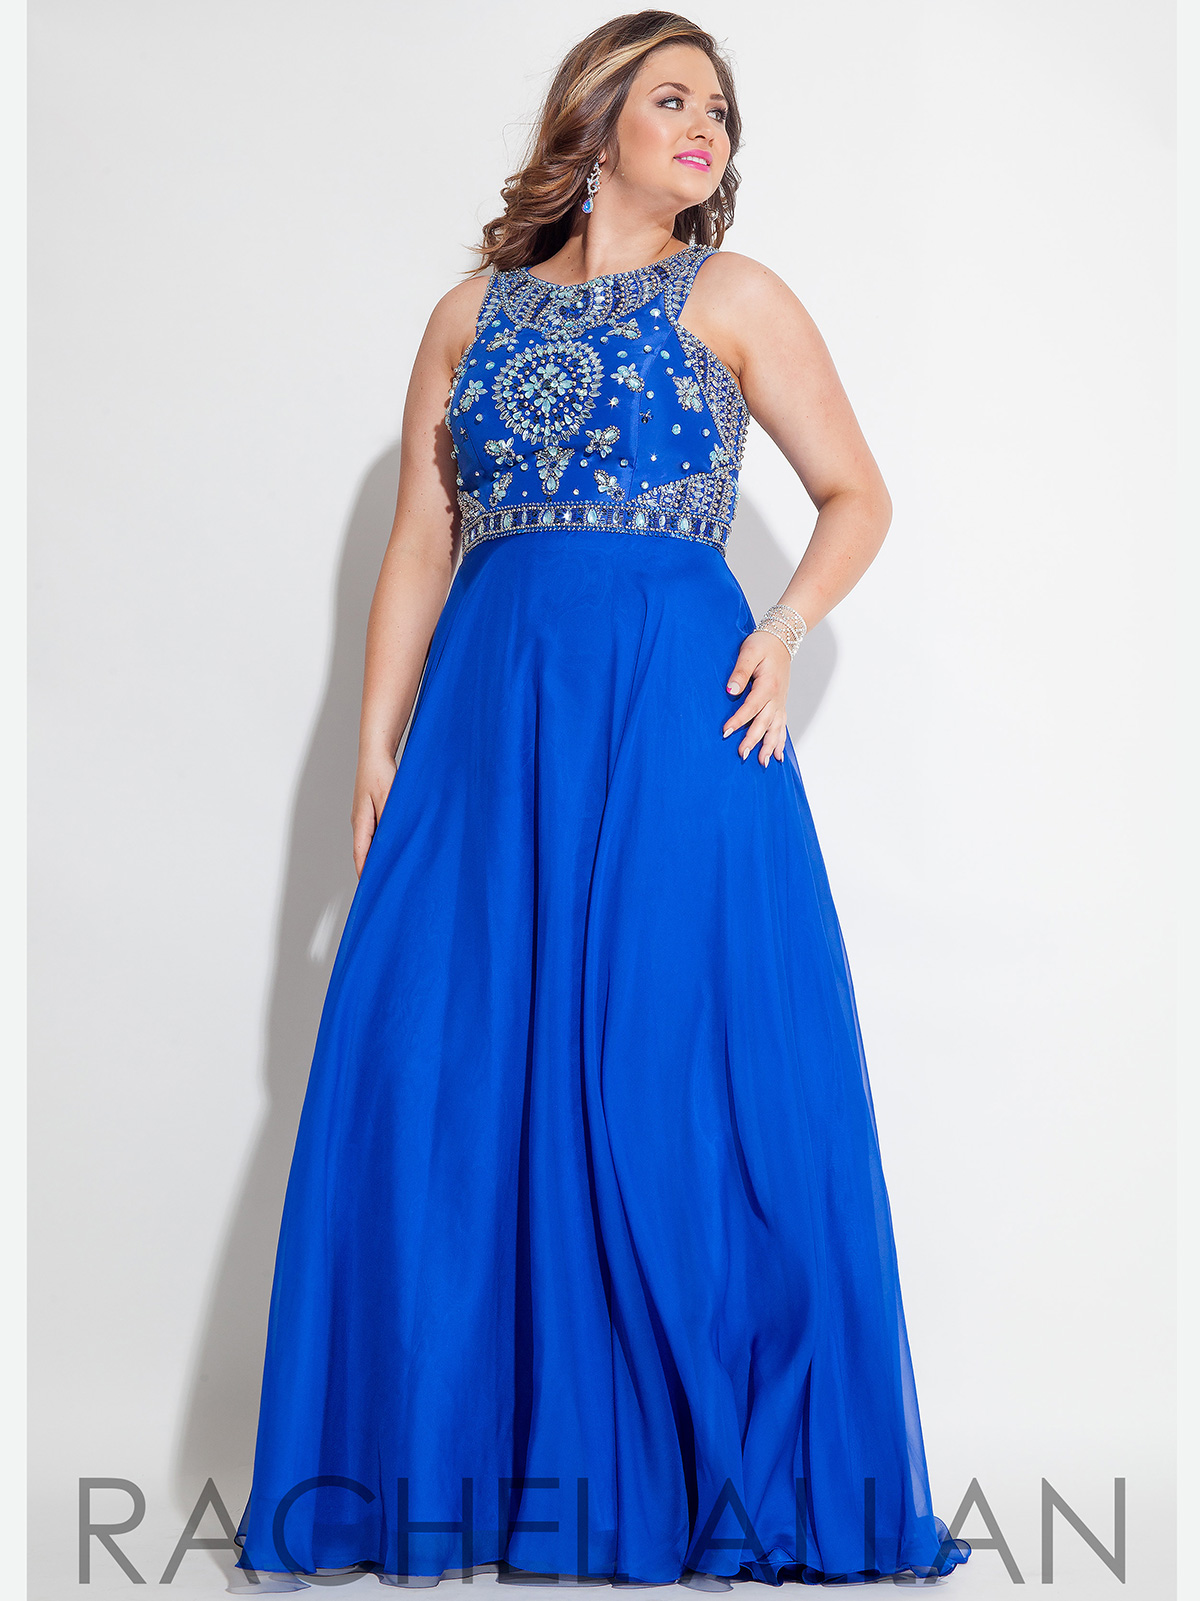 Magnificent Prom Dresses Asheville Nc Gallery Wedding Dress Ideas